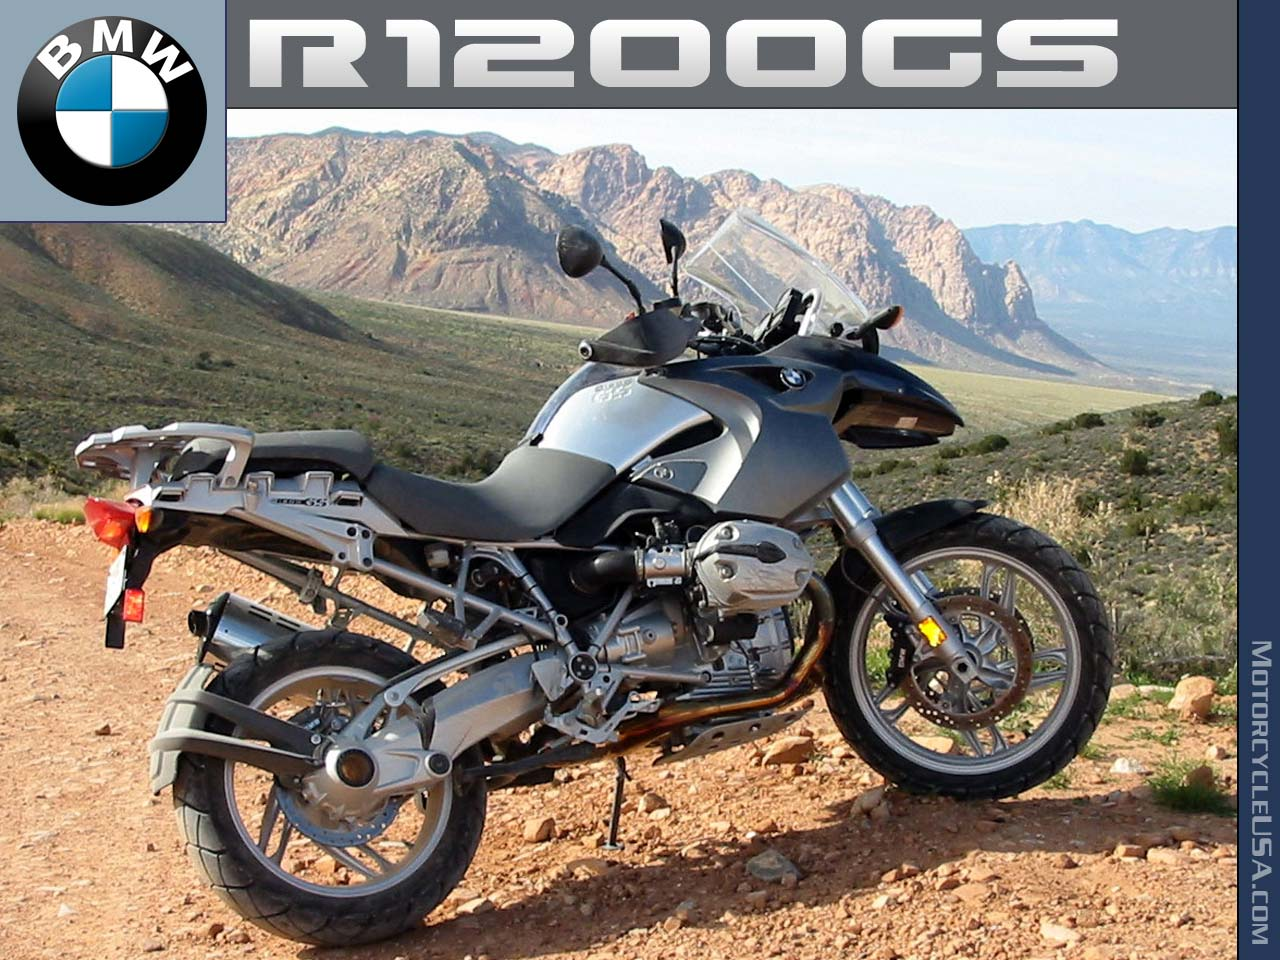 BMW R1200GS 2005 images #7338